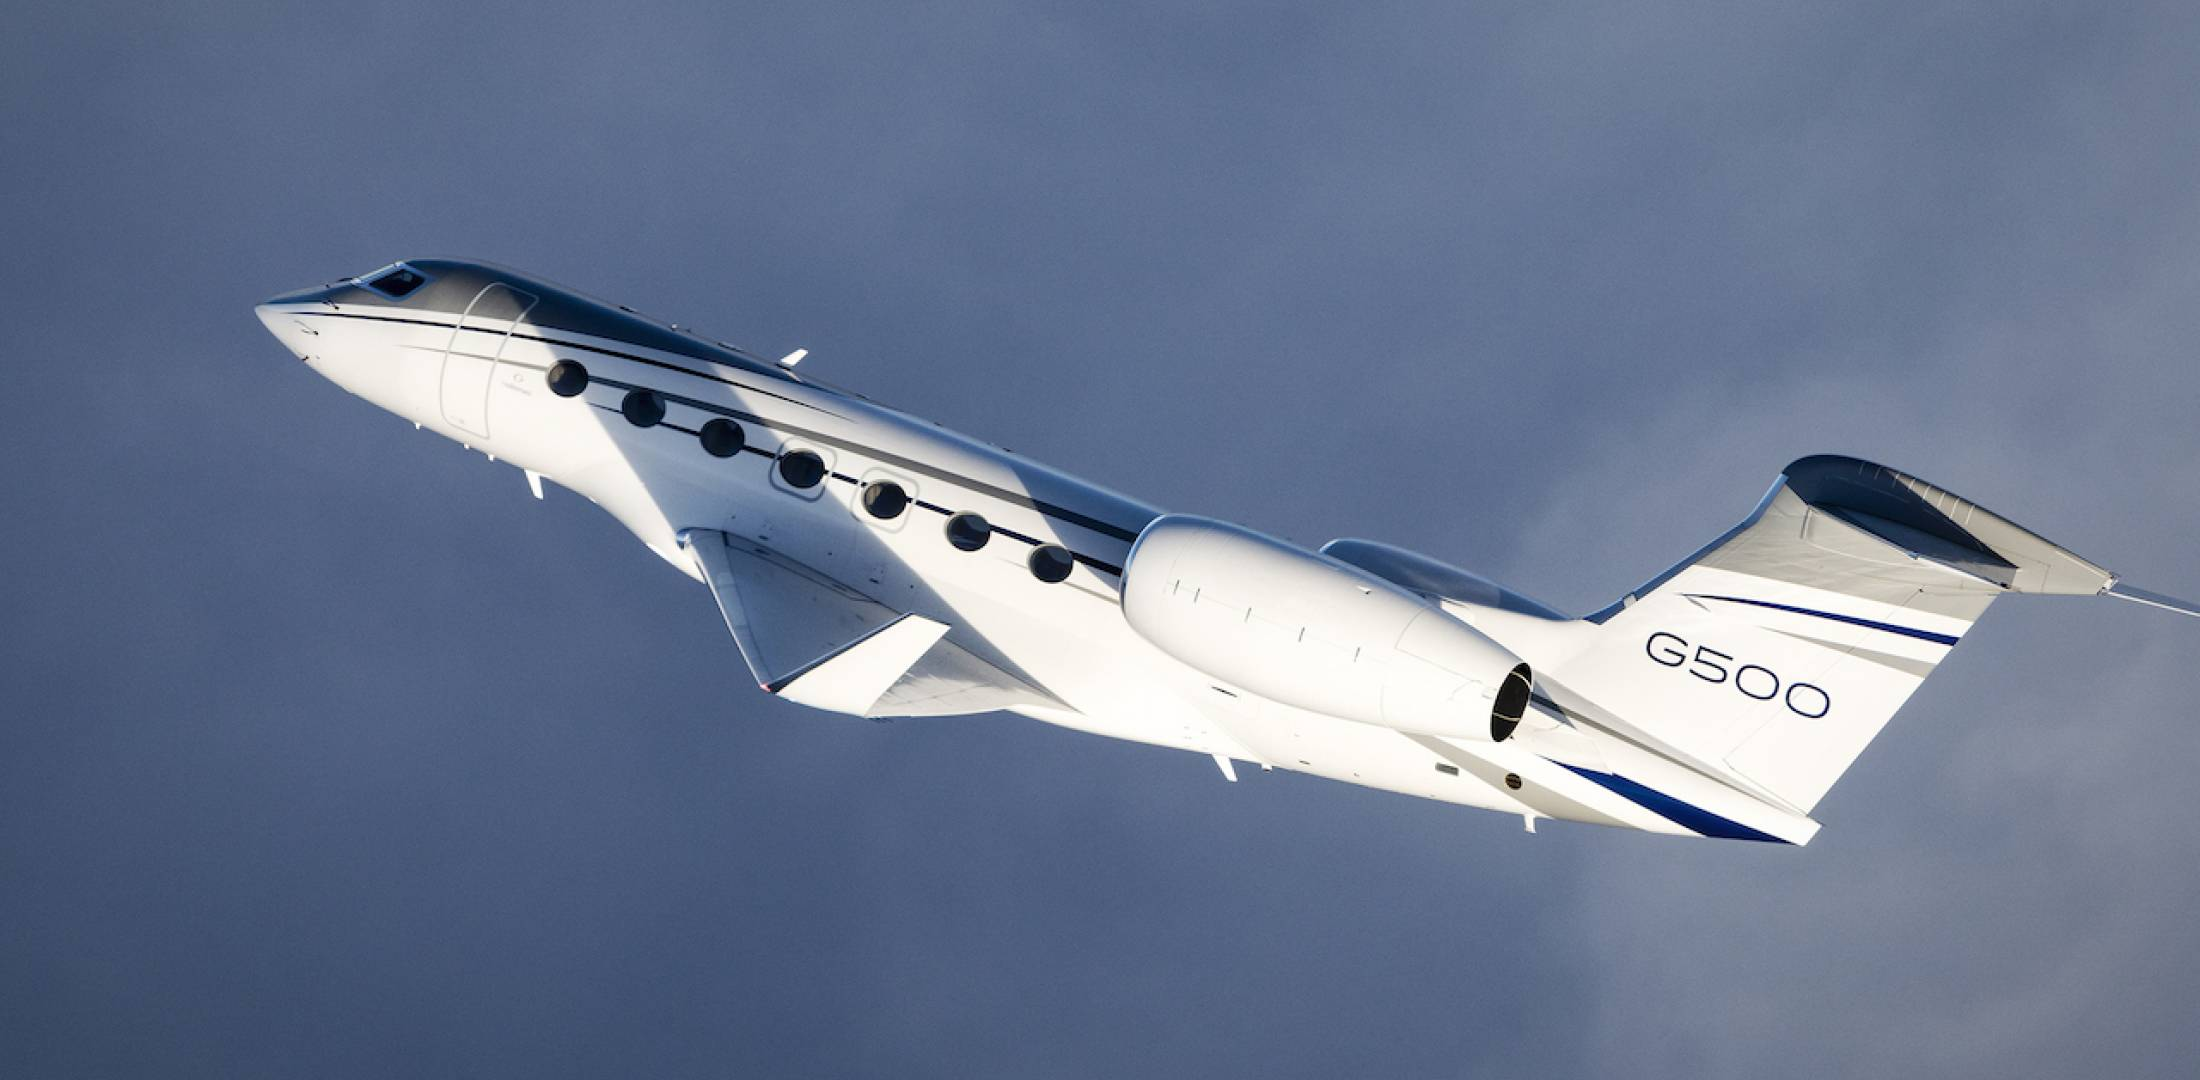 Gulfstream G500 (Photo: Gulfstream Aerospace)